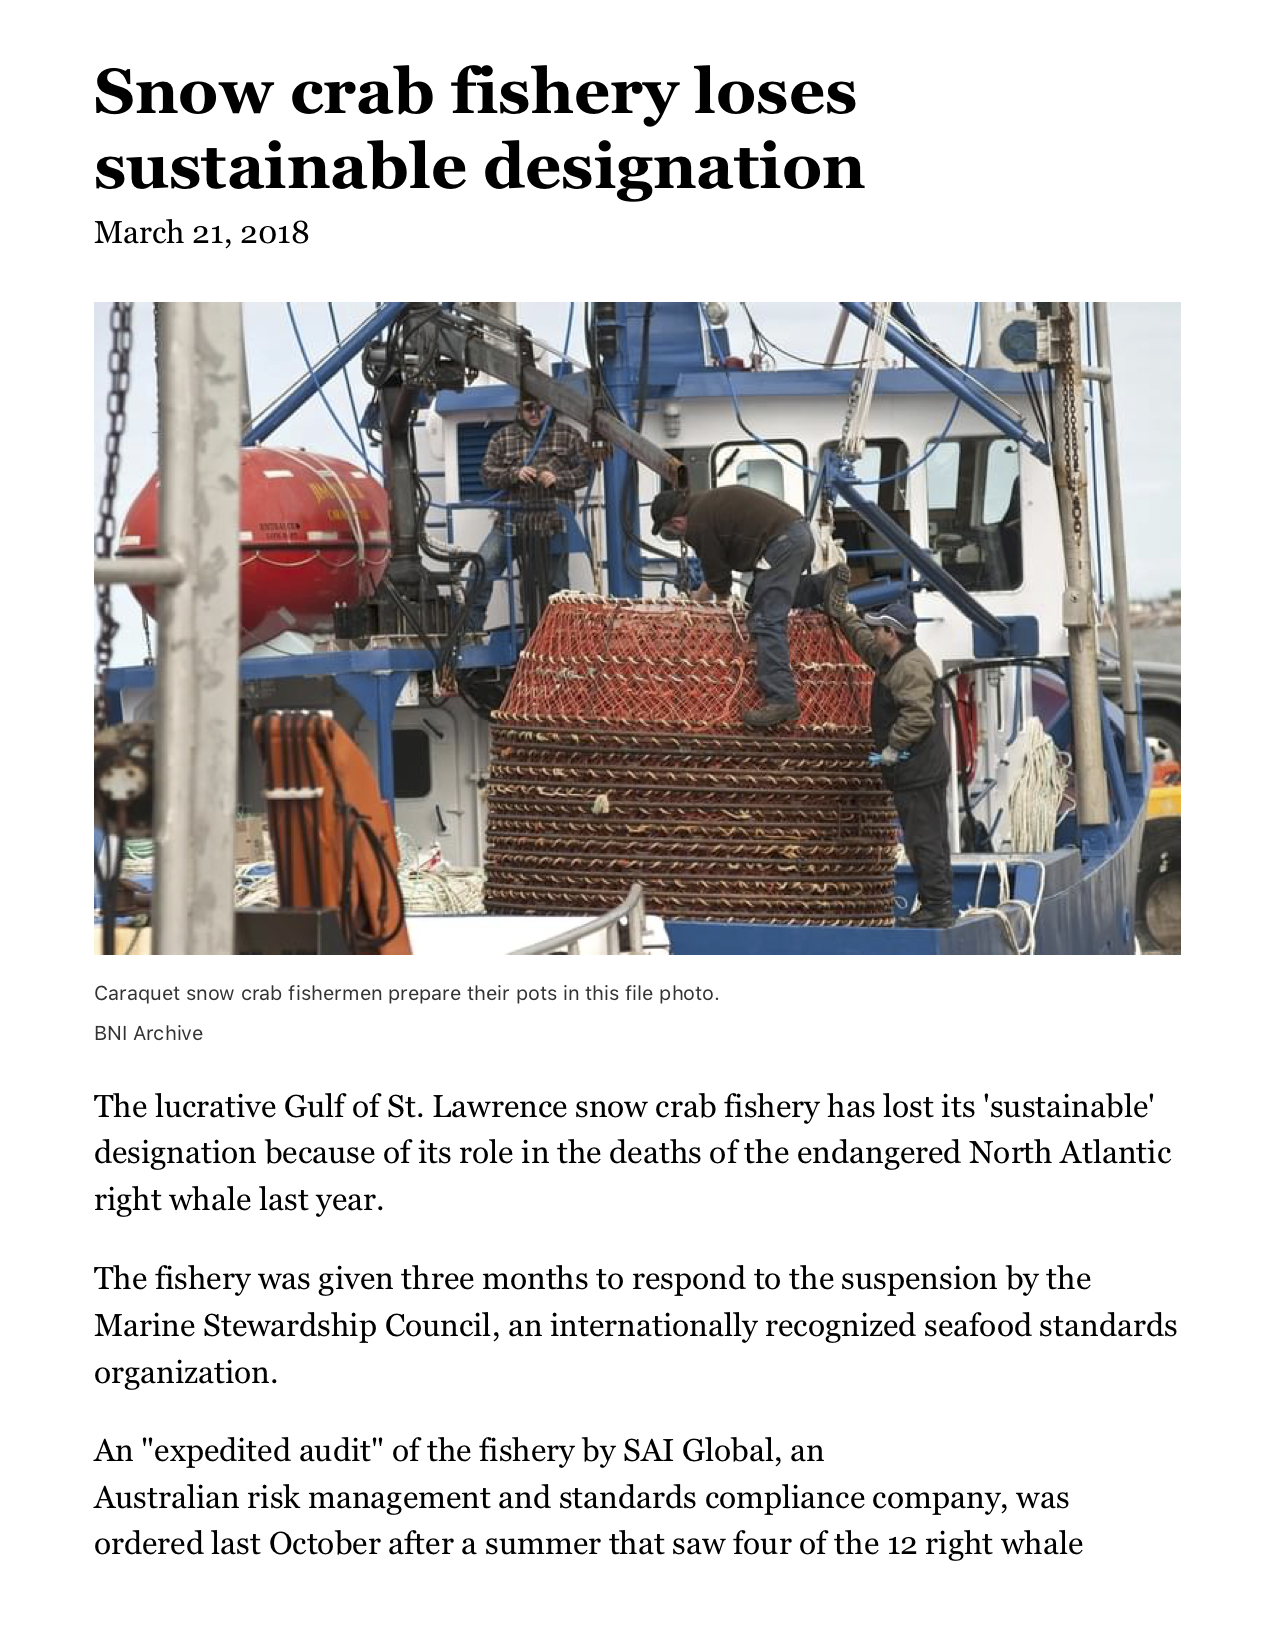 Snow crab fishery loses sustainable designation.png